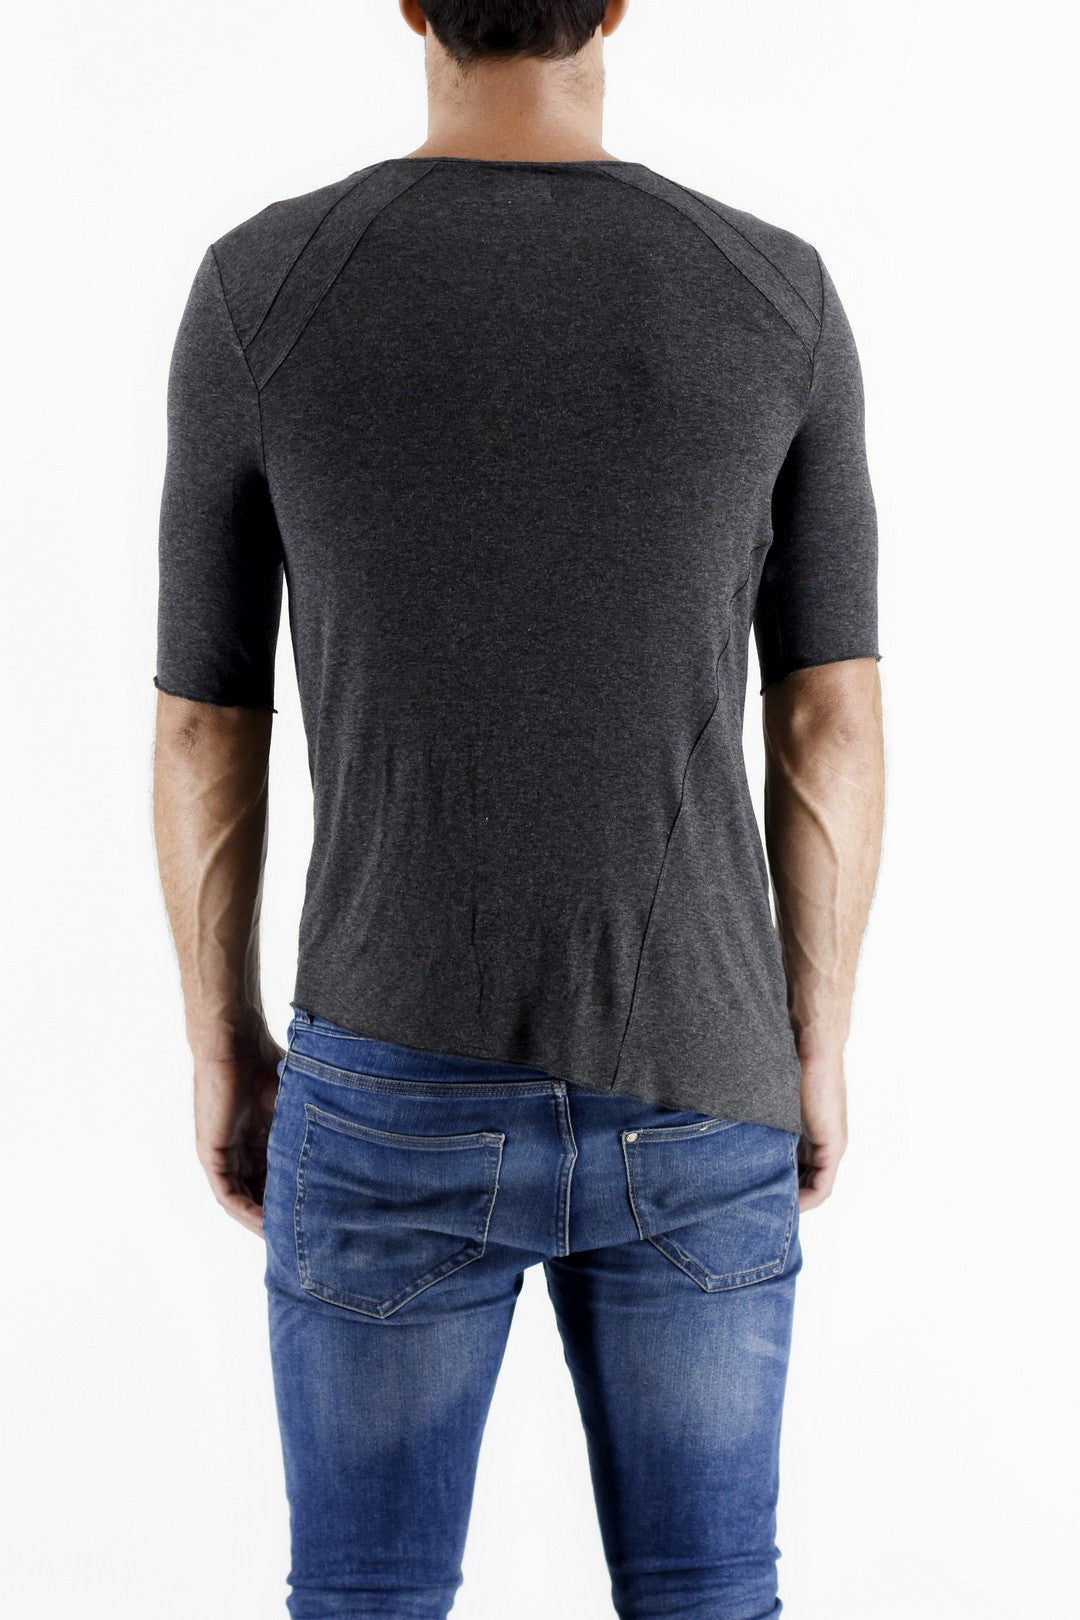 Charcoal Marl 3/4 Sleeve T Shirt ZG5173 back view